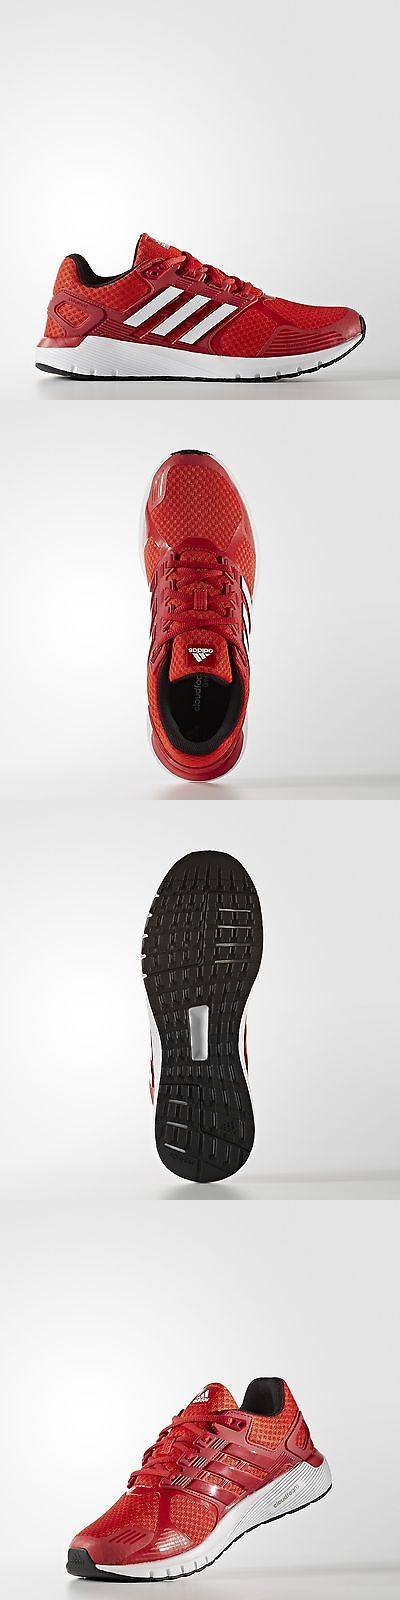 Men Shoes: Adidas Duramo 8 Shoes Mens Red BUY IT NOW ONLY: $42.0